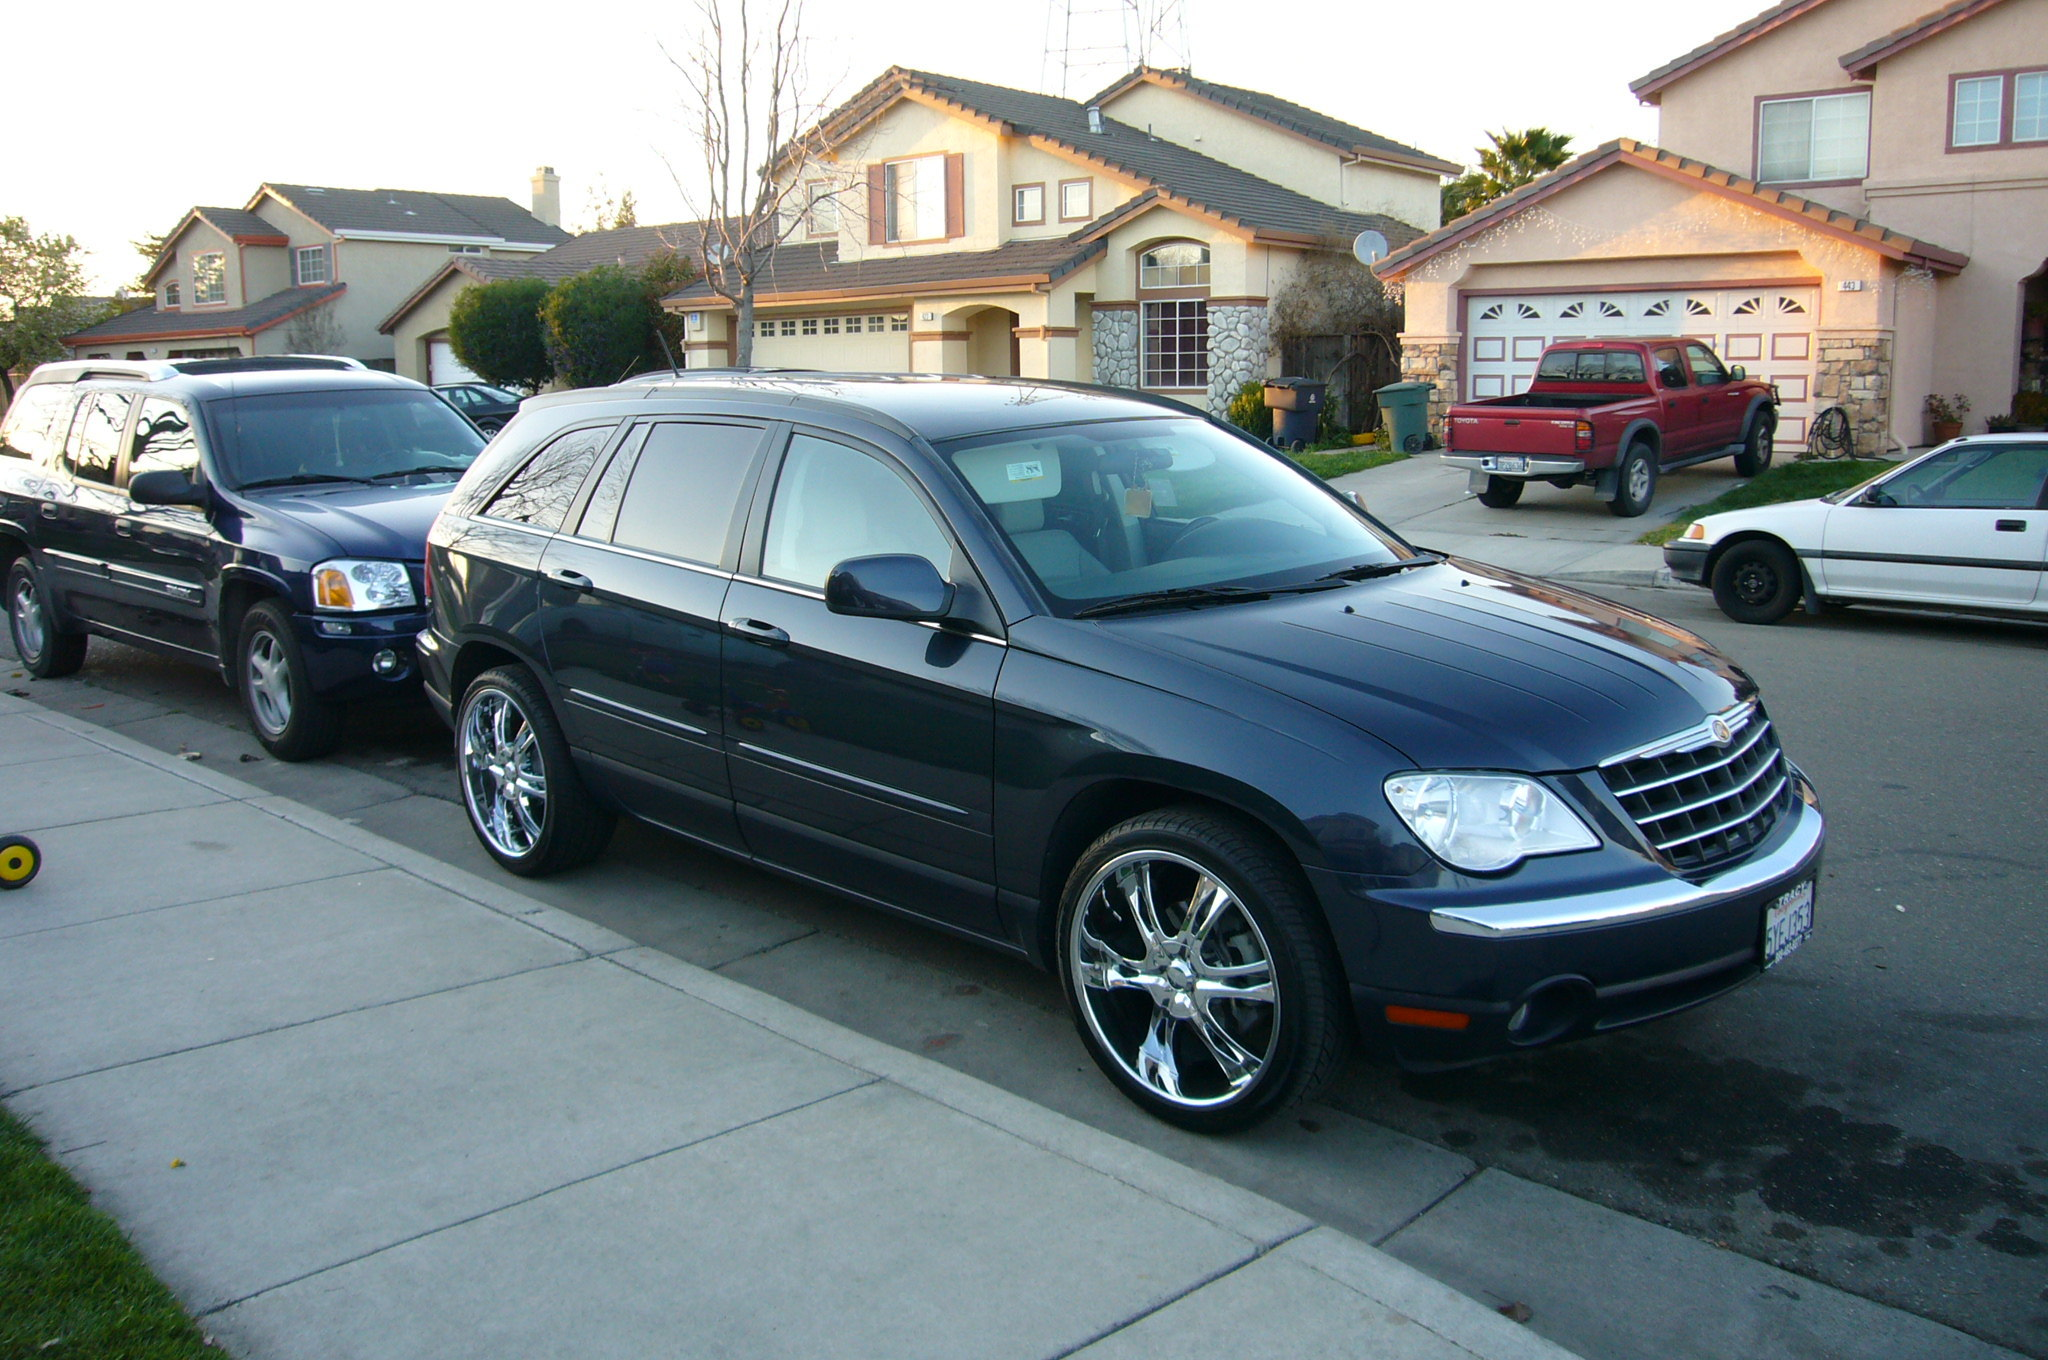 sinaloense82 2007 Chrysler Pacifica Specs, Photos, Modification Info at CarDomain